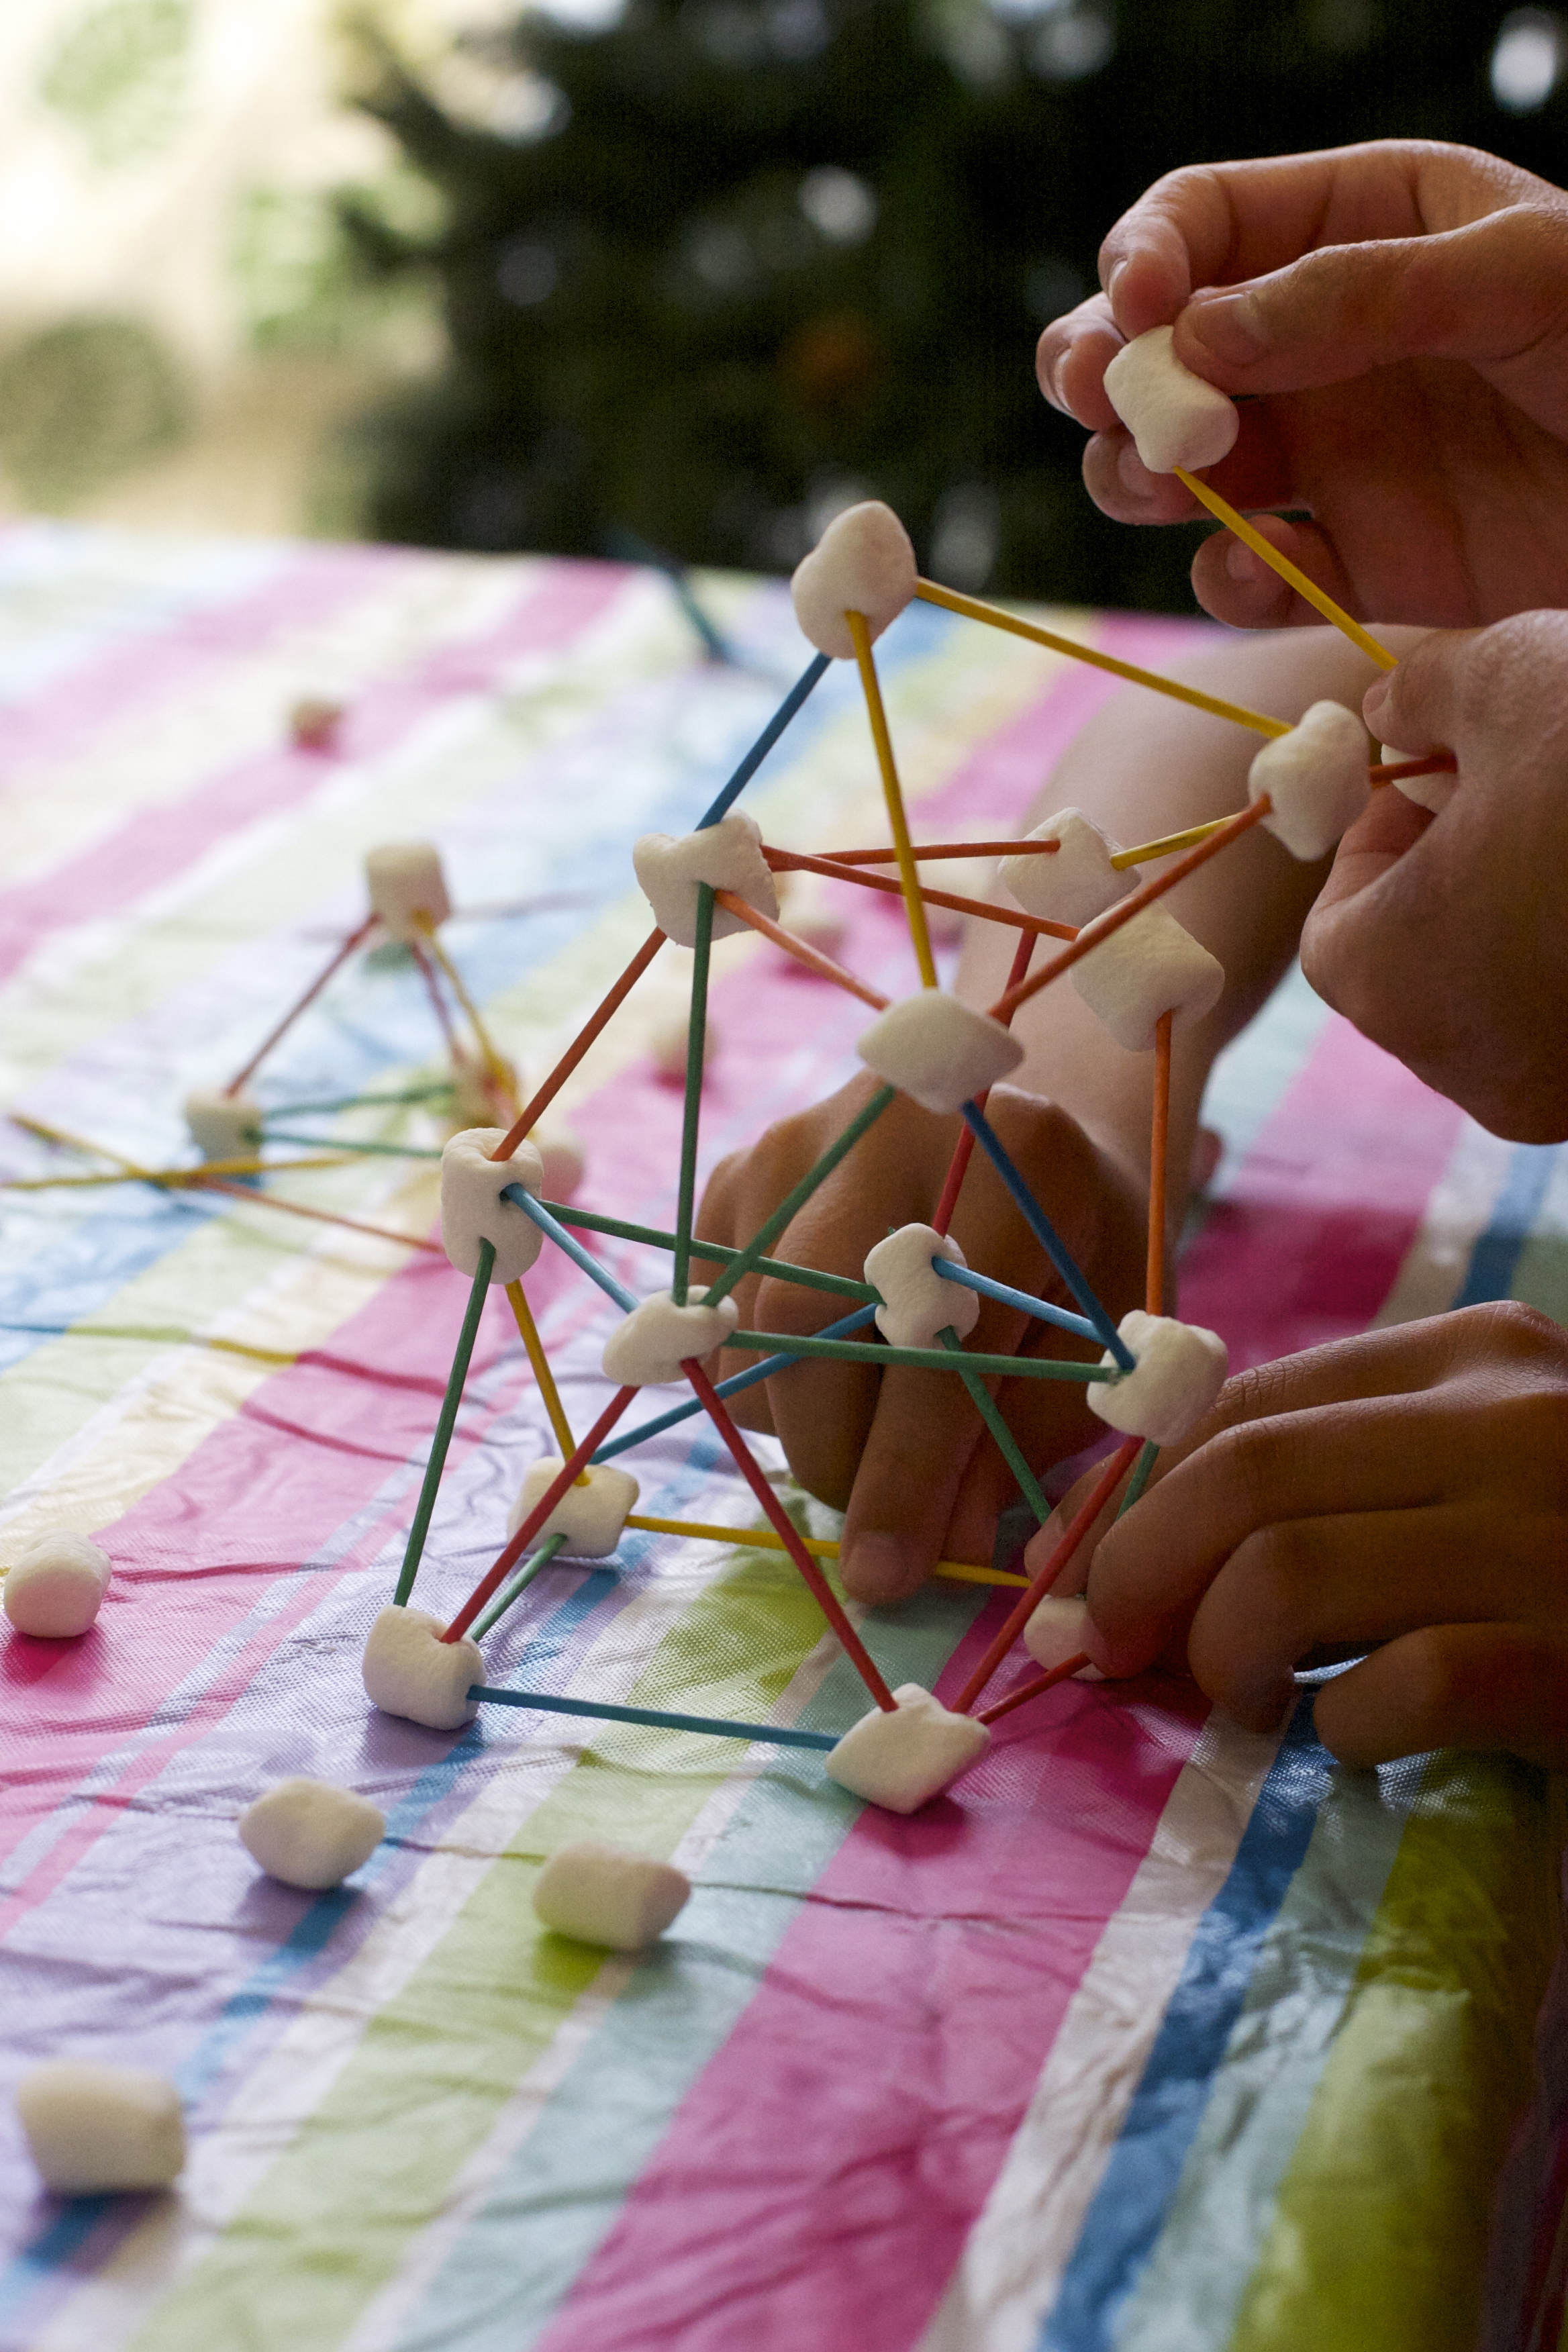 It's just an image of Impeccable Building With Toothpicks and Marshmallows Printable